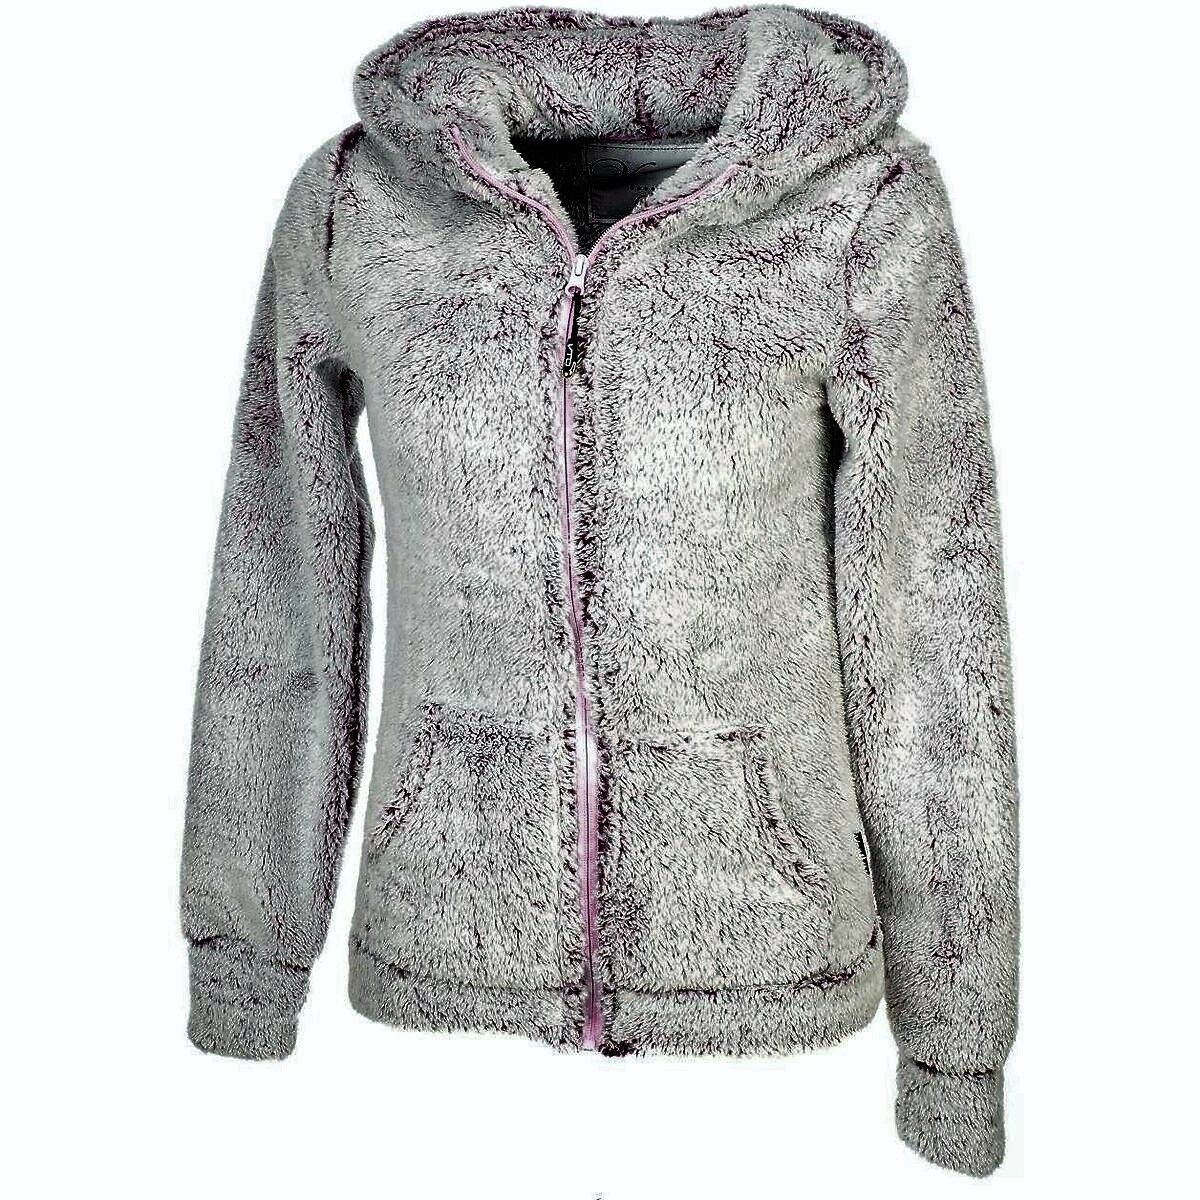 Felpa Maglia greenigo Nistel Full Zip Cappuccio women Soft Pile New